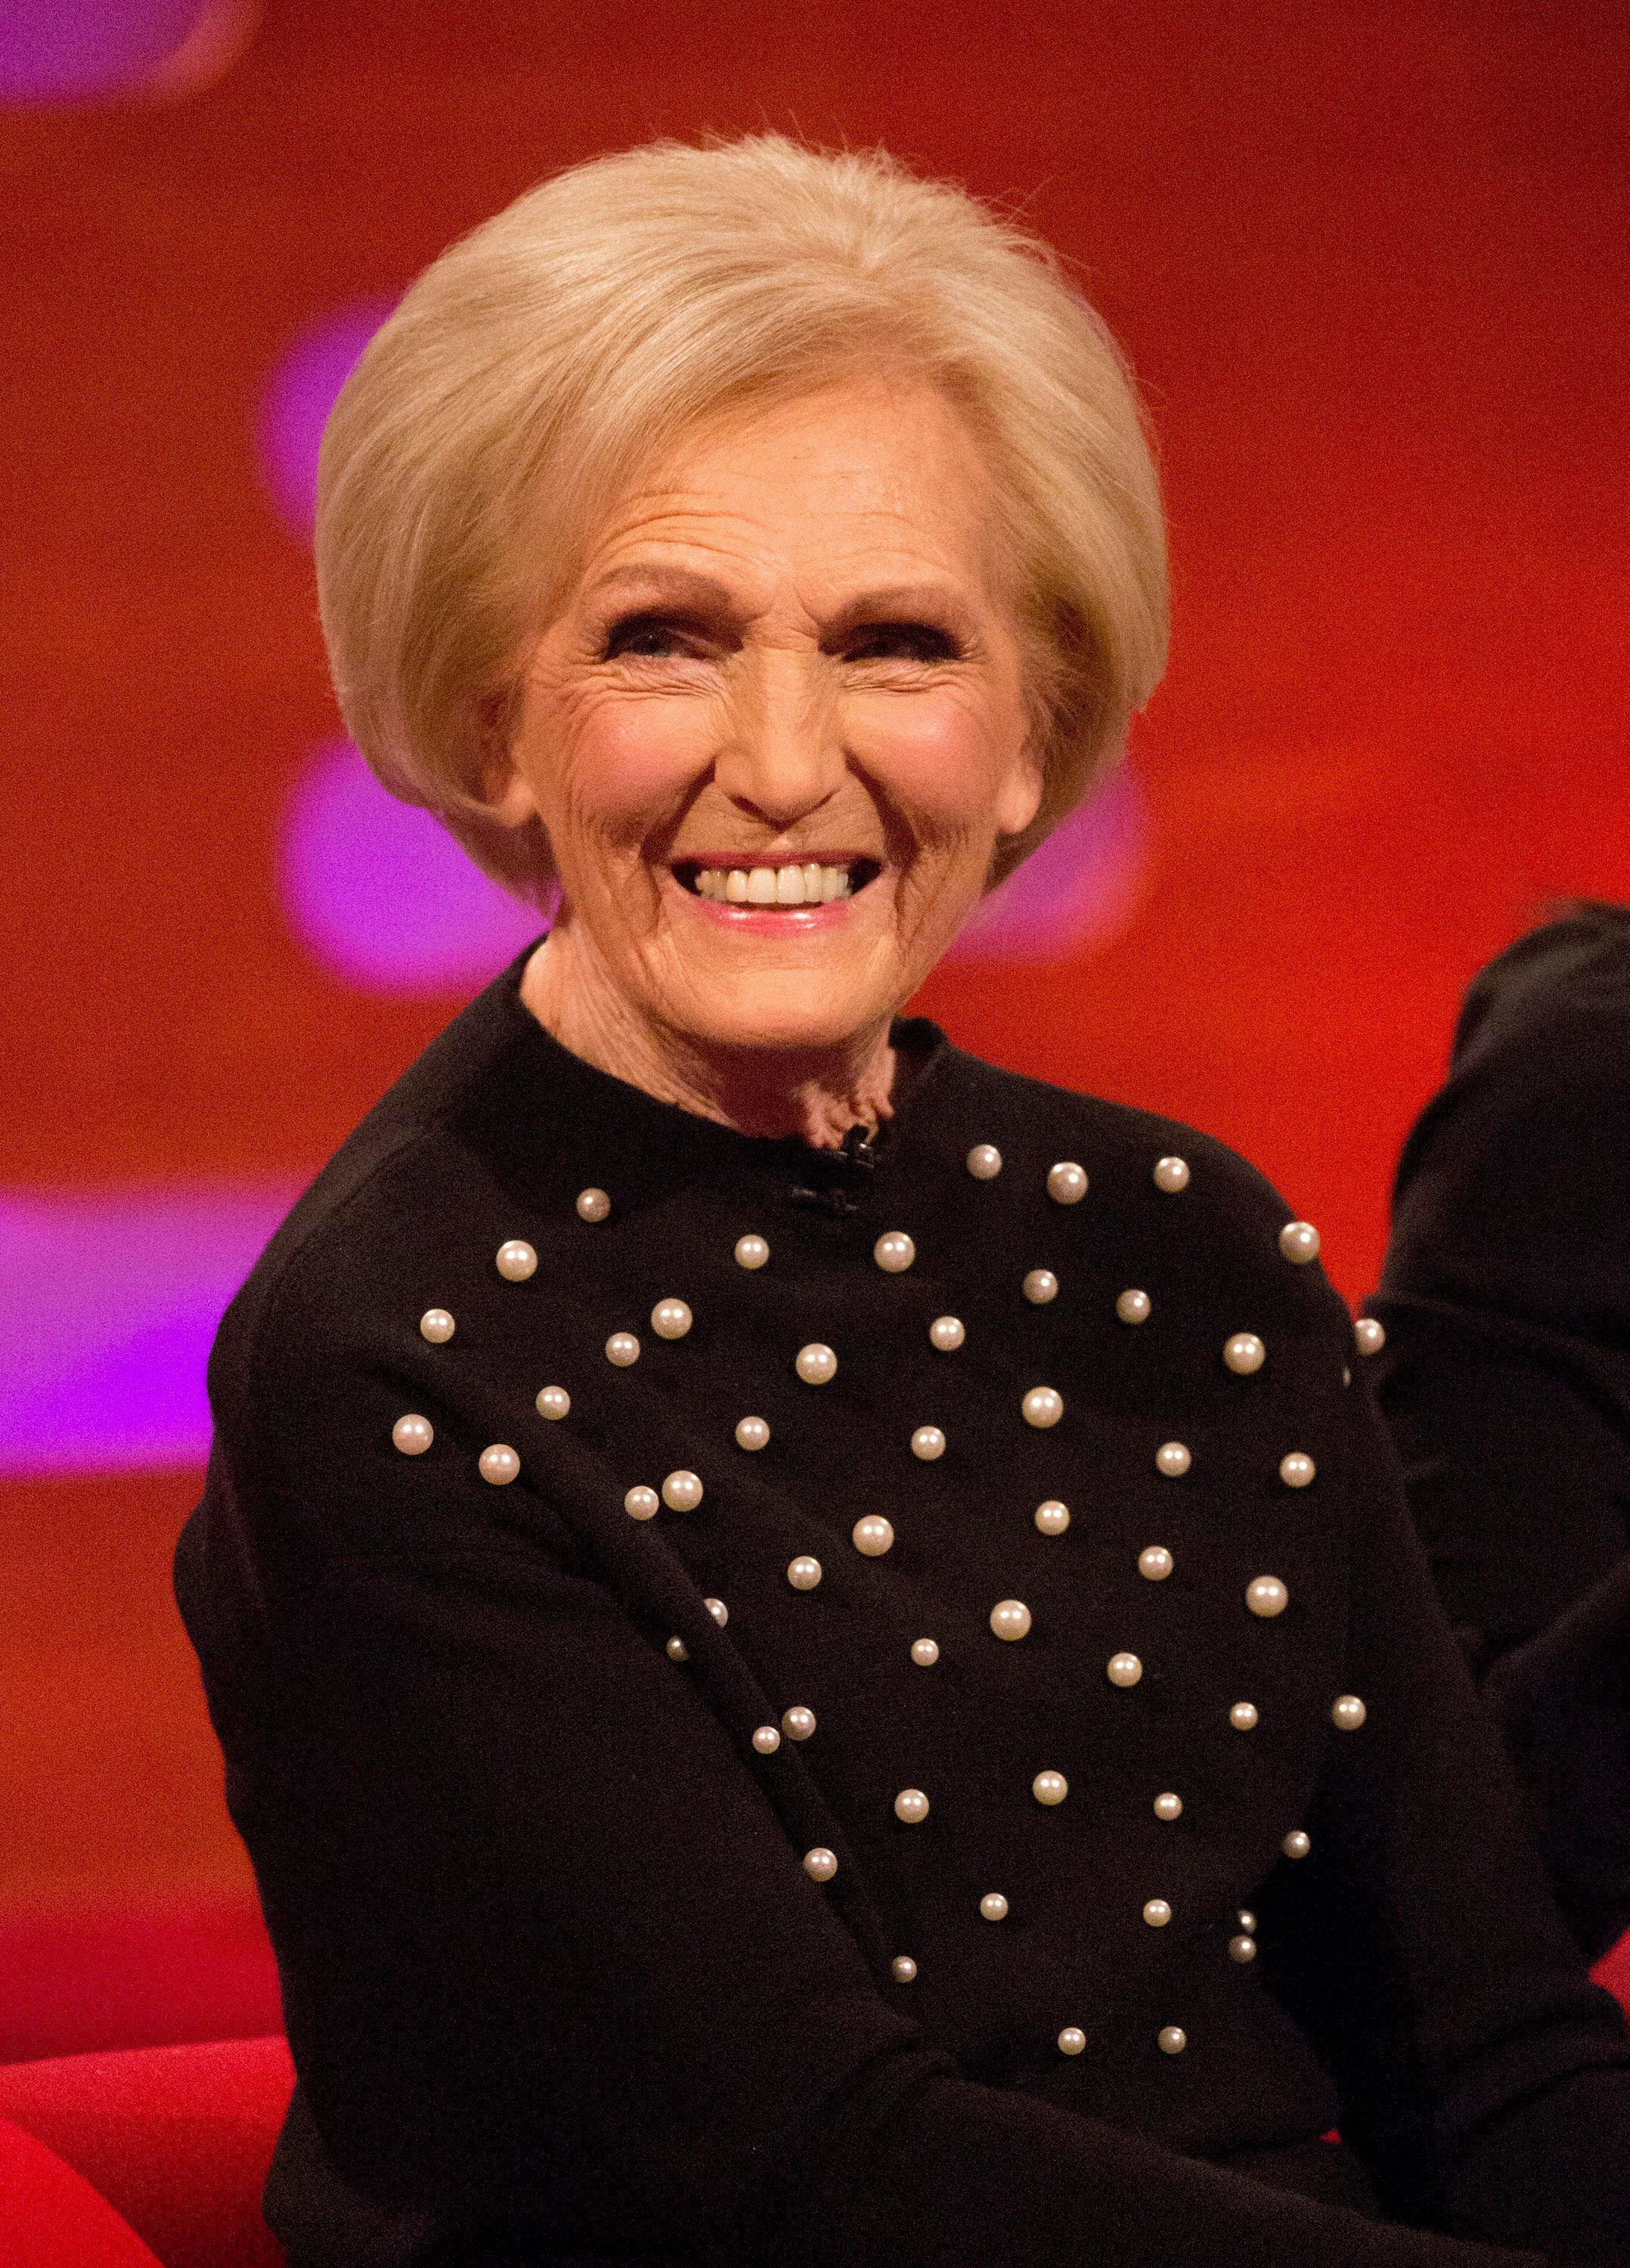 Mary Berry during the filming of the Graham Norton Show at The London Studios, south London, to be aired on BBC One on Friday evening. (Photo by Isabel Infantes/PA Images via Getty Images)